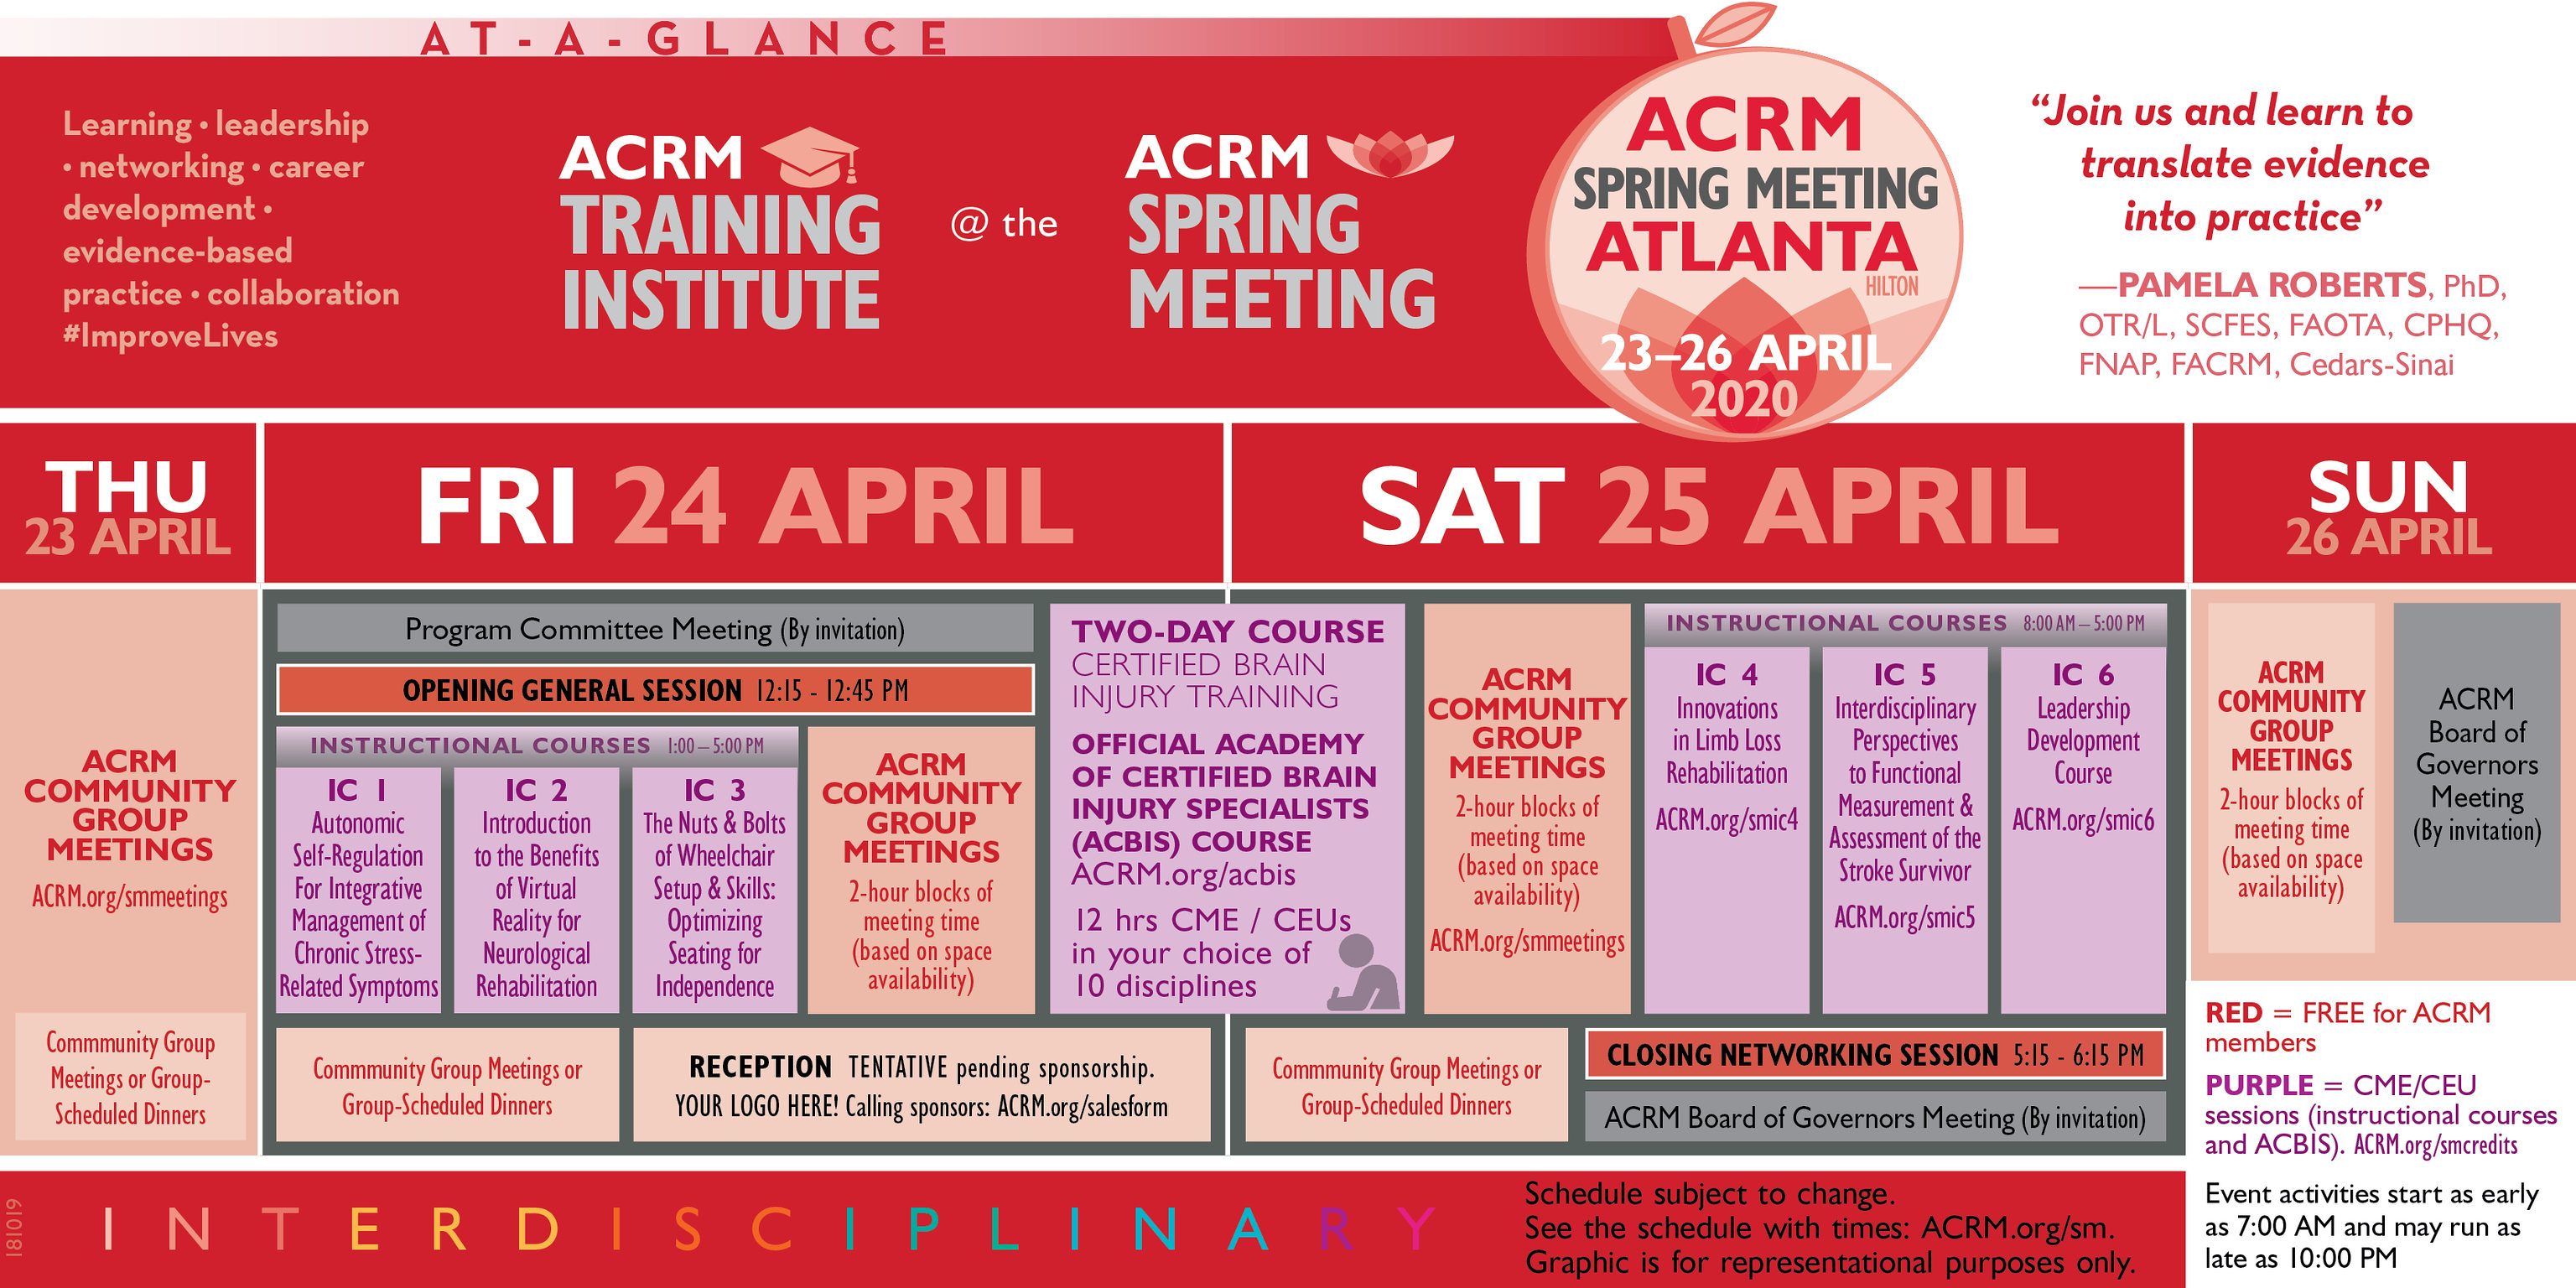 ACRM Training Institute at the Spring Meeting Program At-A-Glance